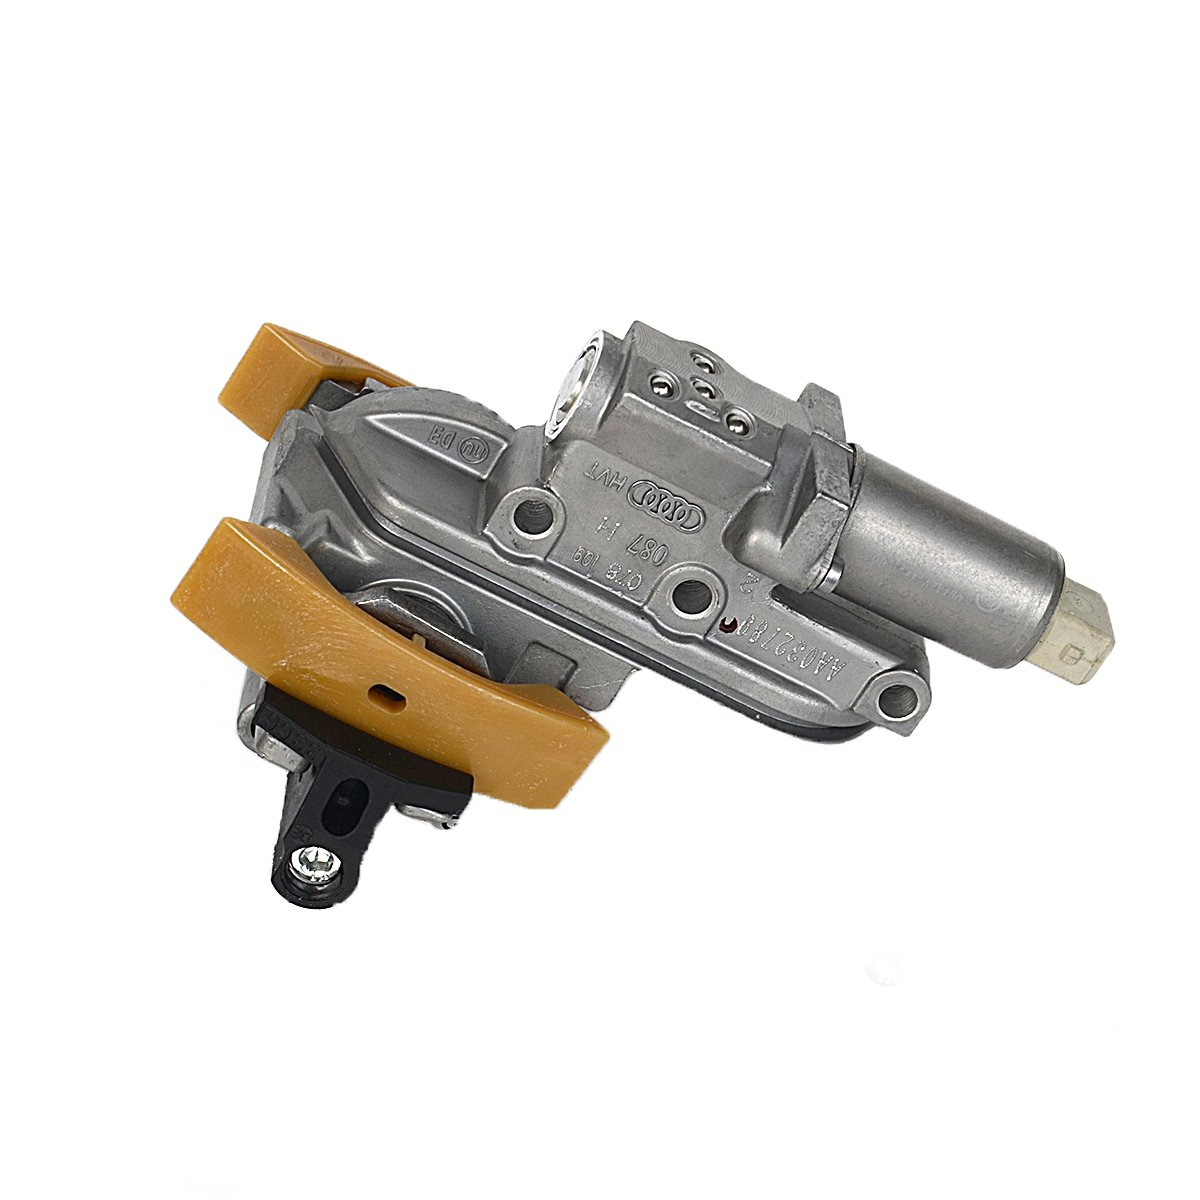 Timing Chain Tensioner Adjuster 1.8T 058109088B/D/E/H/K/L For VW Audi A3 A4 A6 GELUOXI 058109088B 058109088E